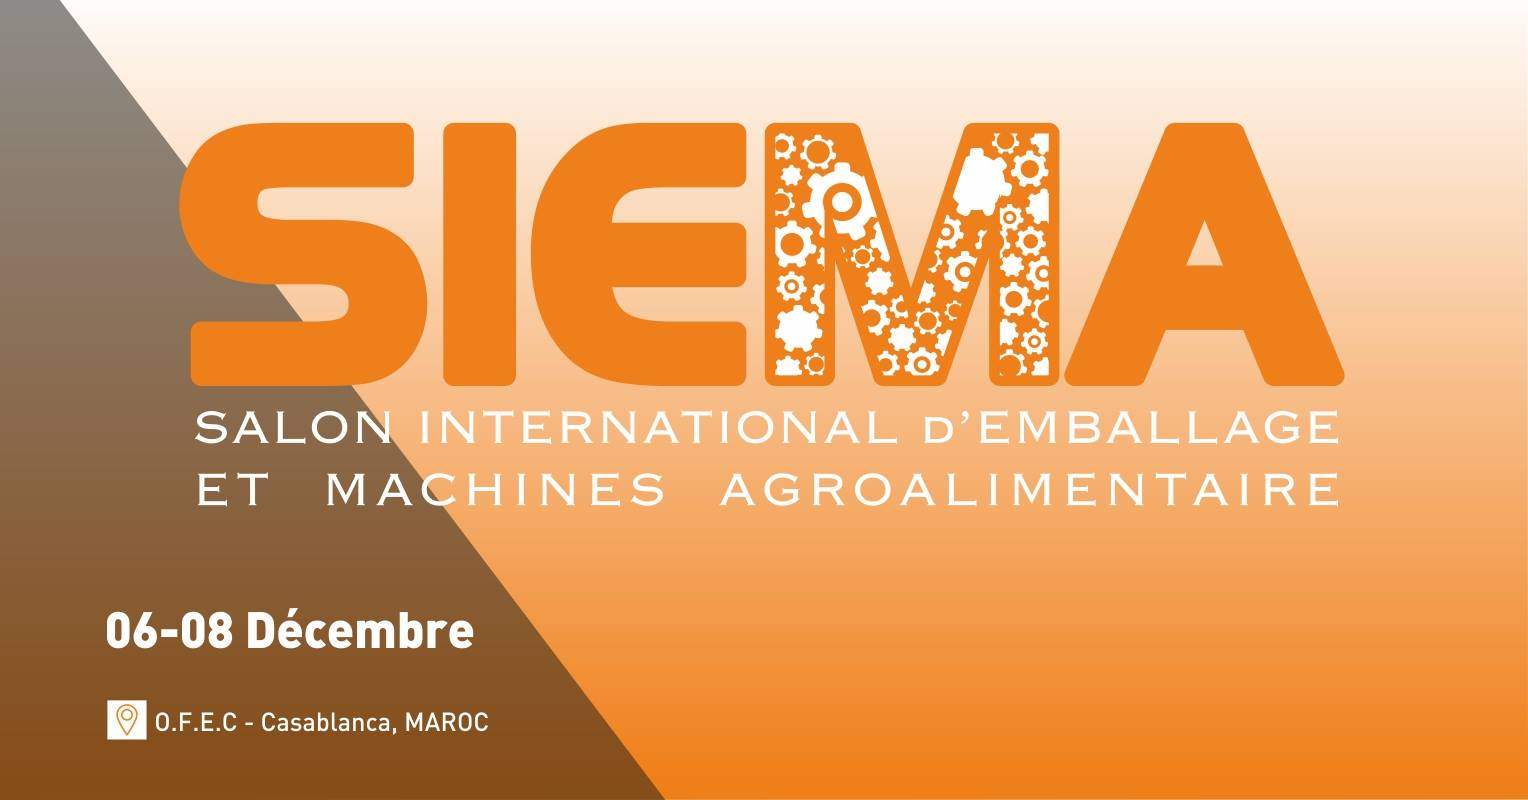 Salon Emballage Salon Int D Emballage Et Machines Agroalimentaire Siema